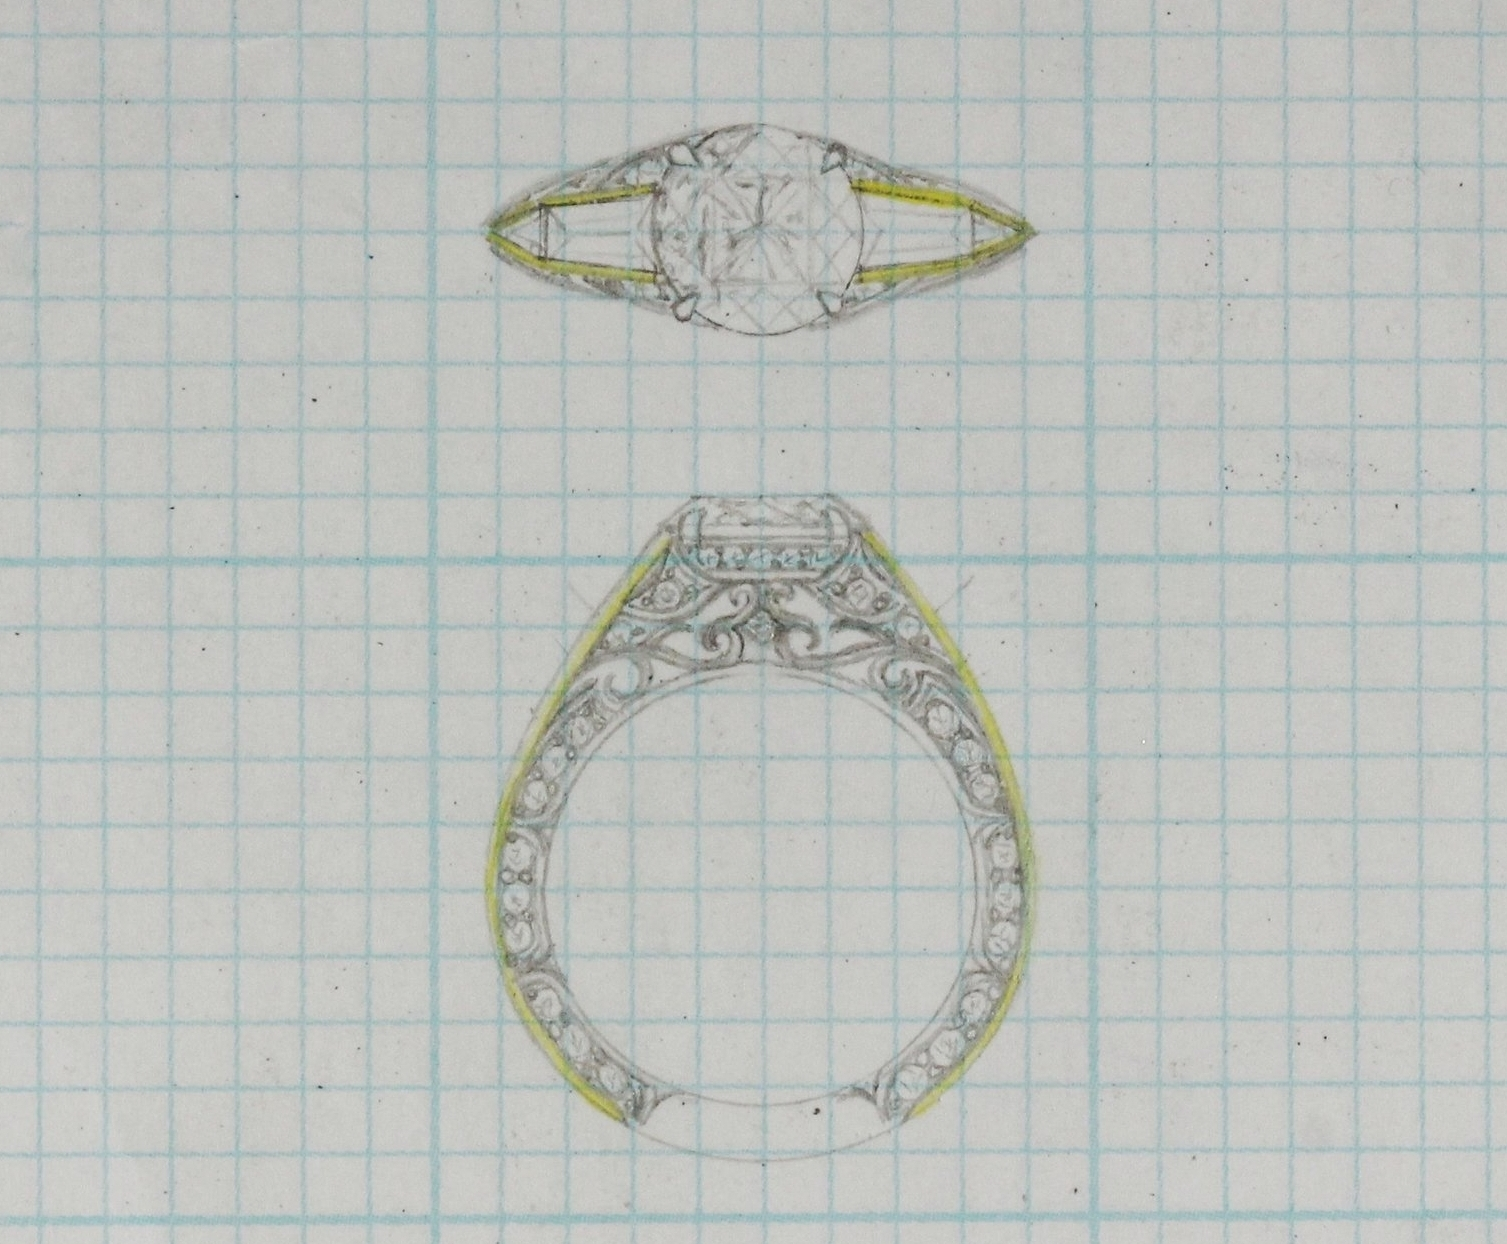 Design Process - This wedding set was hand fabricated in 14 karat white gold showcasing a strong modern-classic feel with her 2 carat round brilliant cut center and large tapered baguette diamonds. Each view creating a life of it's own, the top view is strong, modern-classic while the profile is deilicately detailed in filigree and diamonds. A variety of bands were designed and created to sit flush against the engagement ring giving the ability to change the look of her set as she desires.